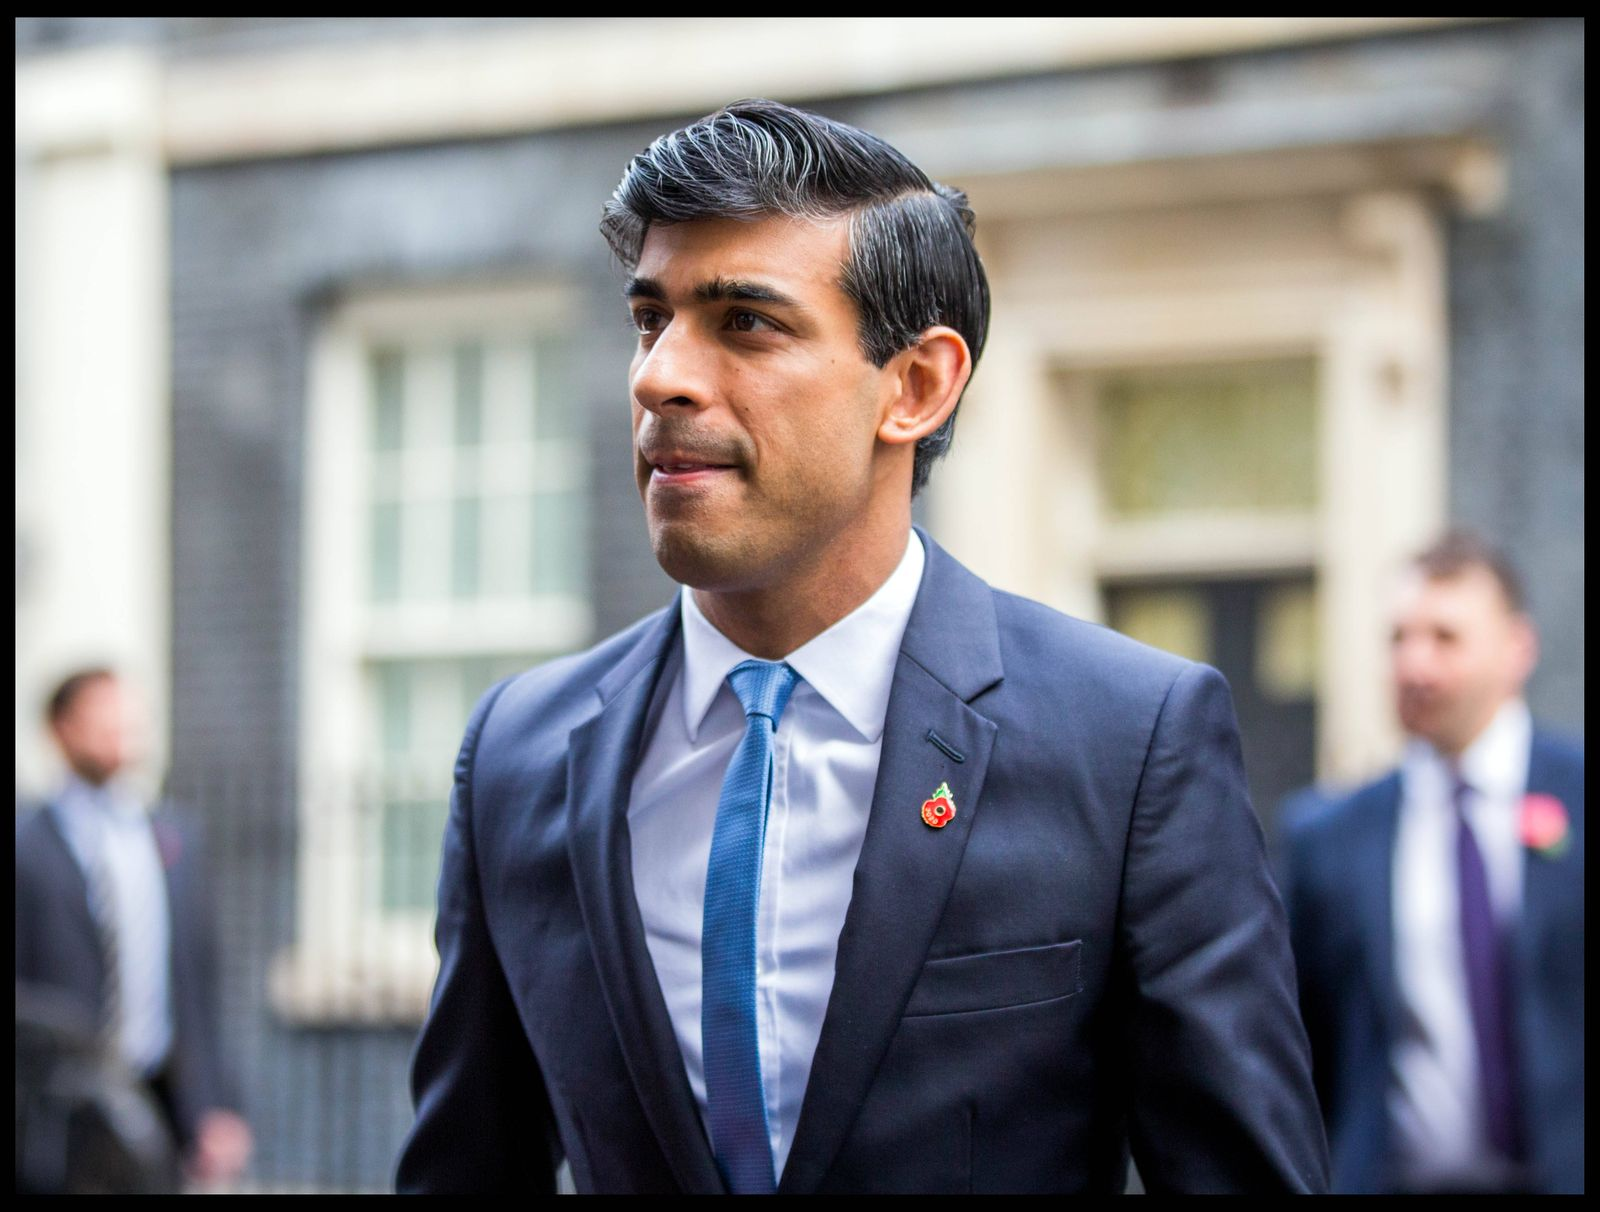 . 10/11/2020. London, United Kingdom. Cabinet Meeting. Rishi Sunak - Chancellor of The Exchequer attends Cabinet Meetin